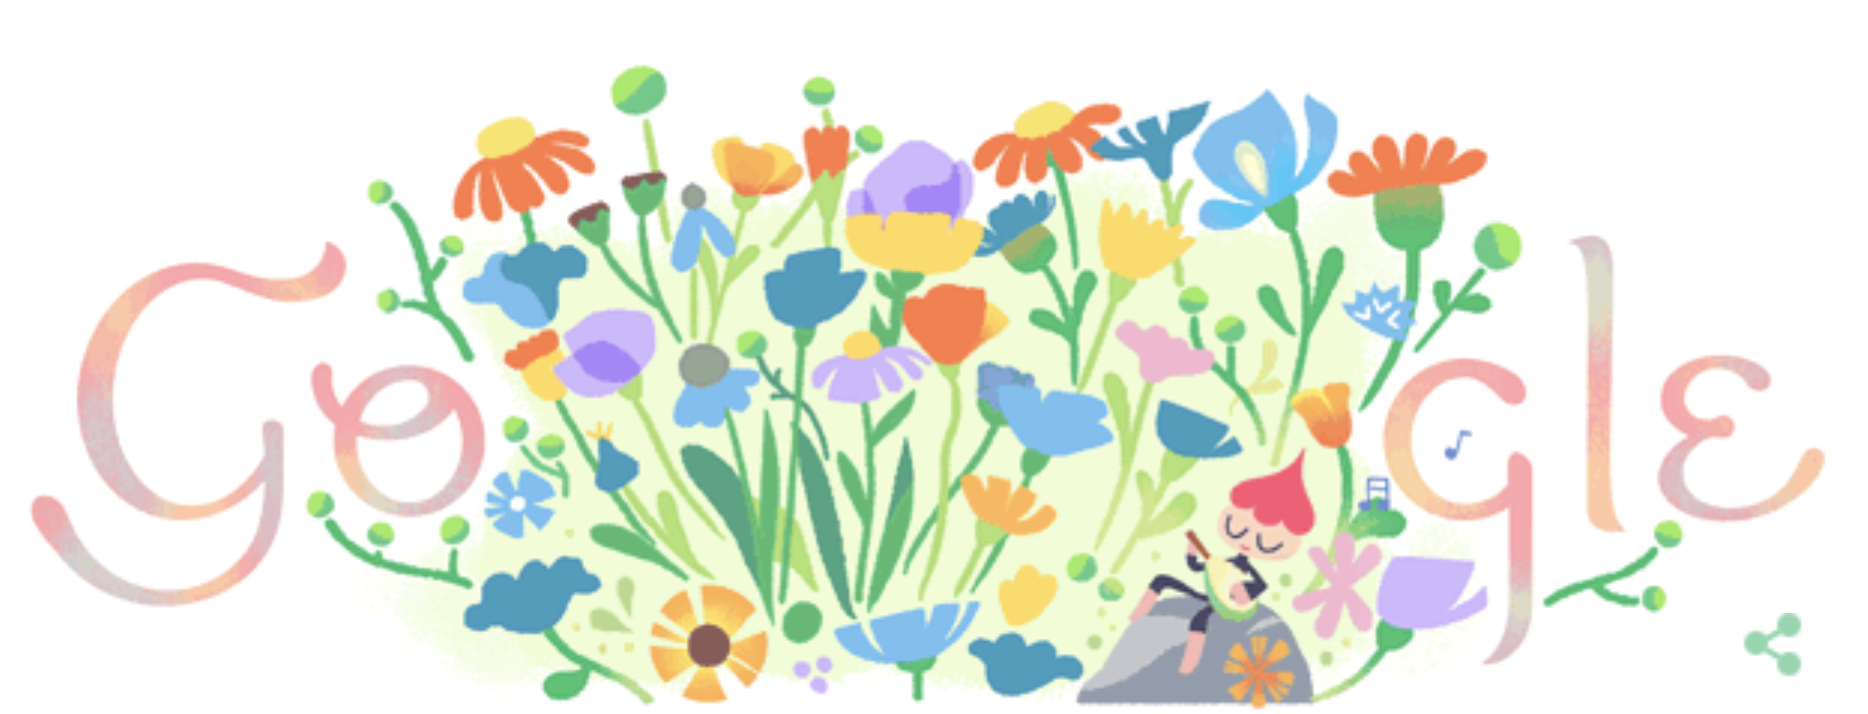 Today's lovely Spring Equinox Google doodle -- first view.